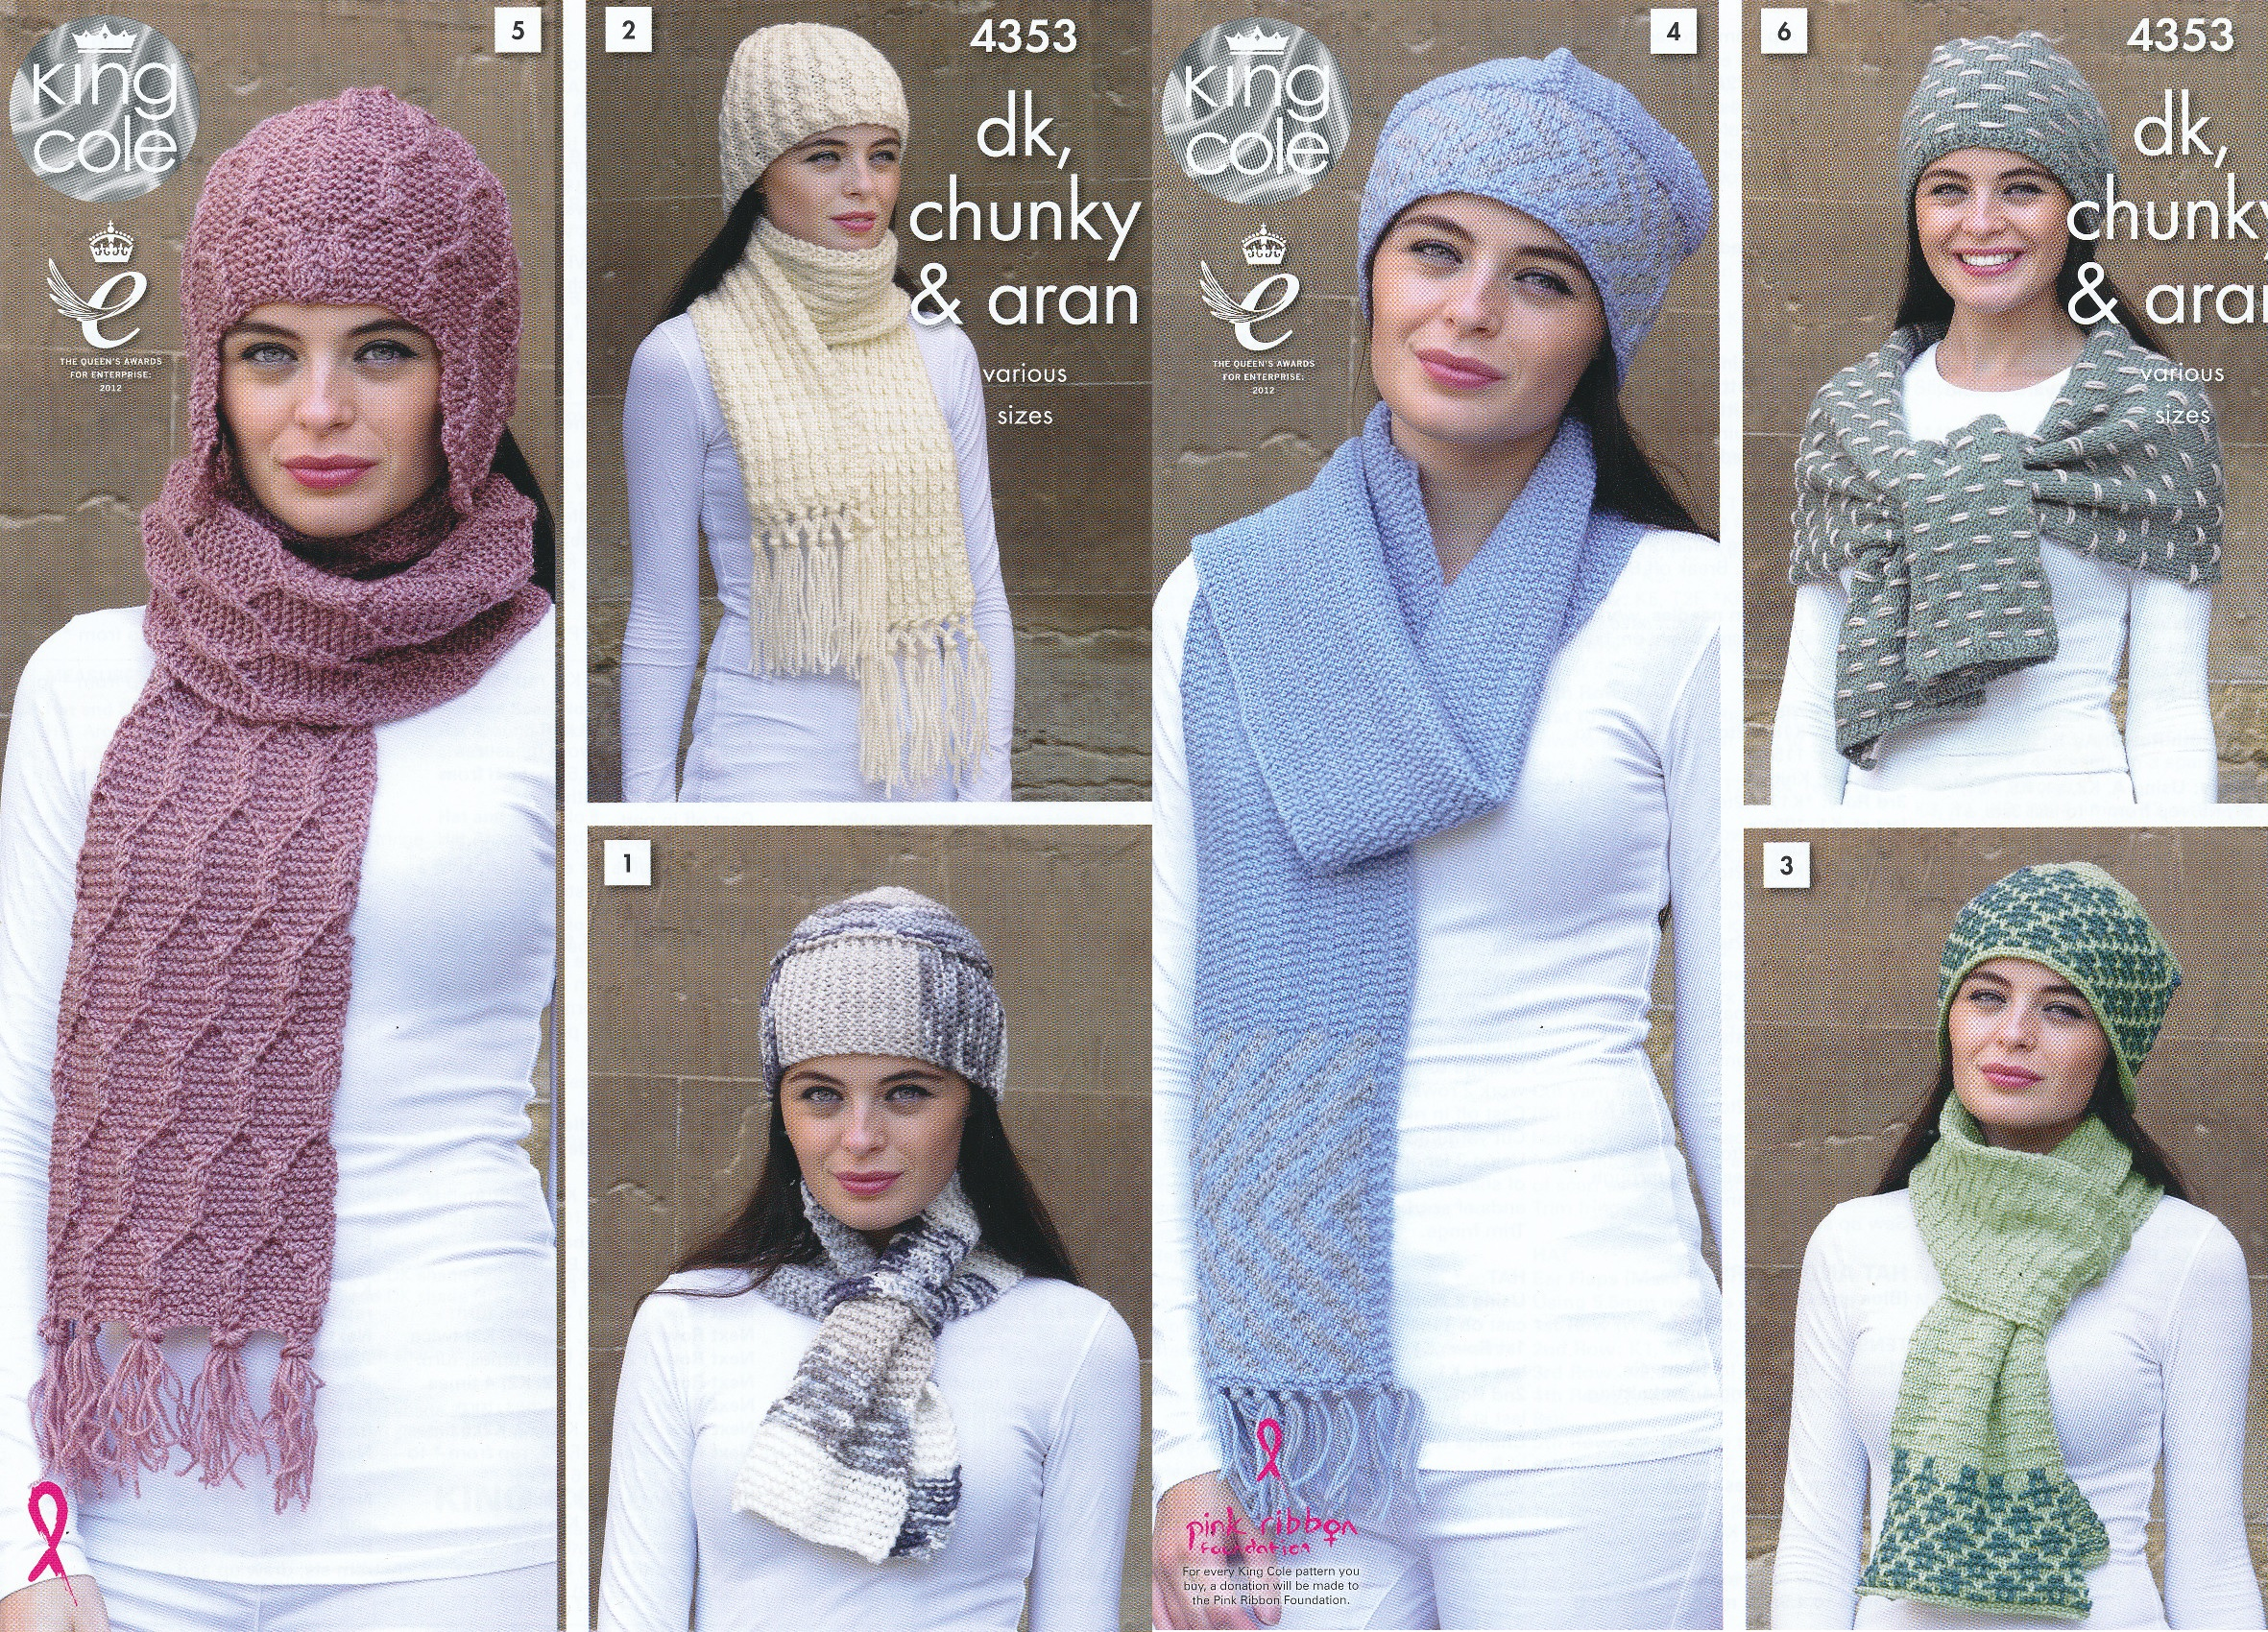 Ladies DK Chunky Aran Knitting Pattern King Cole Womens Winter ... 87846c93bce